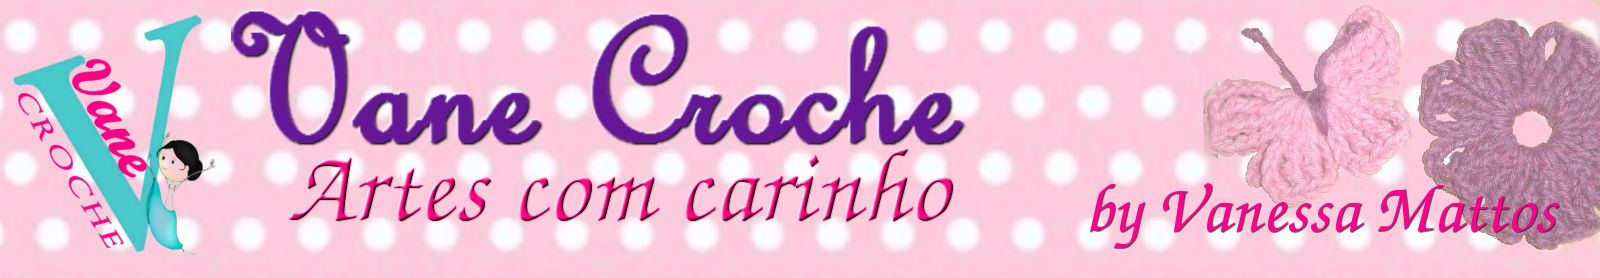 Vanecroche e patch